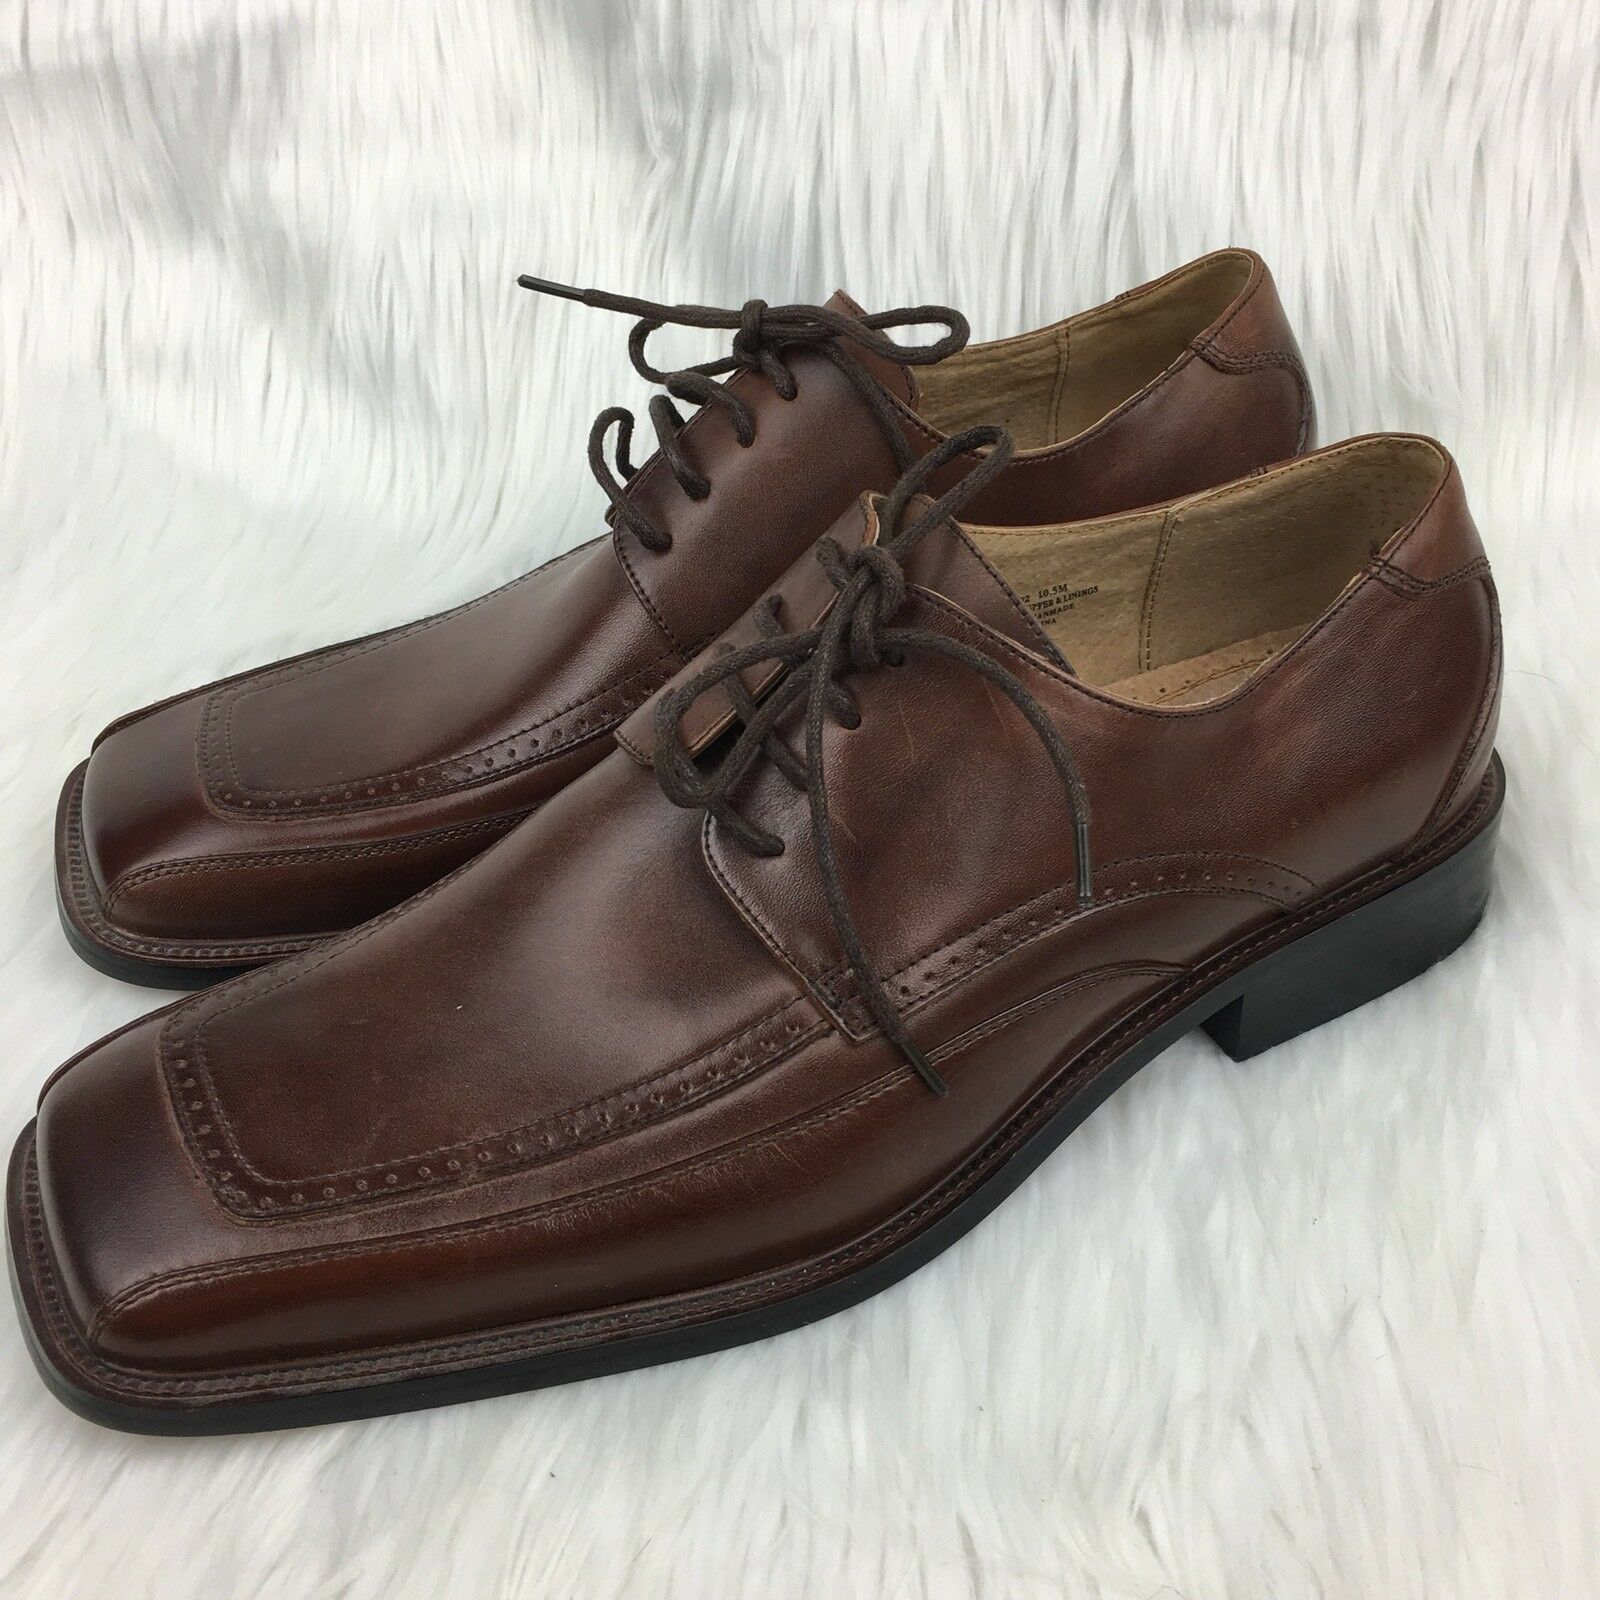 Stacy Adams Men's 10.5 Oxford Loafers Loafers Loafers Leather braun Square Toe NEW Career Dress 5326d9